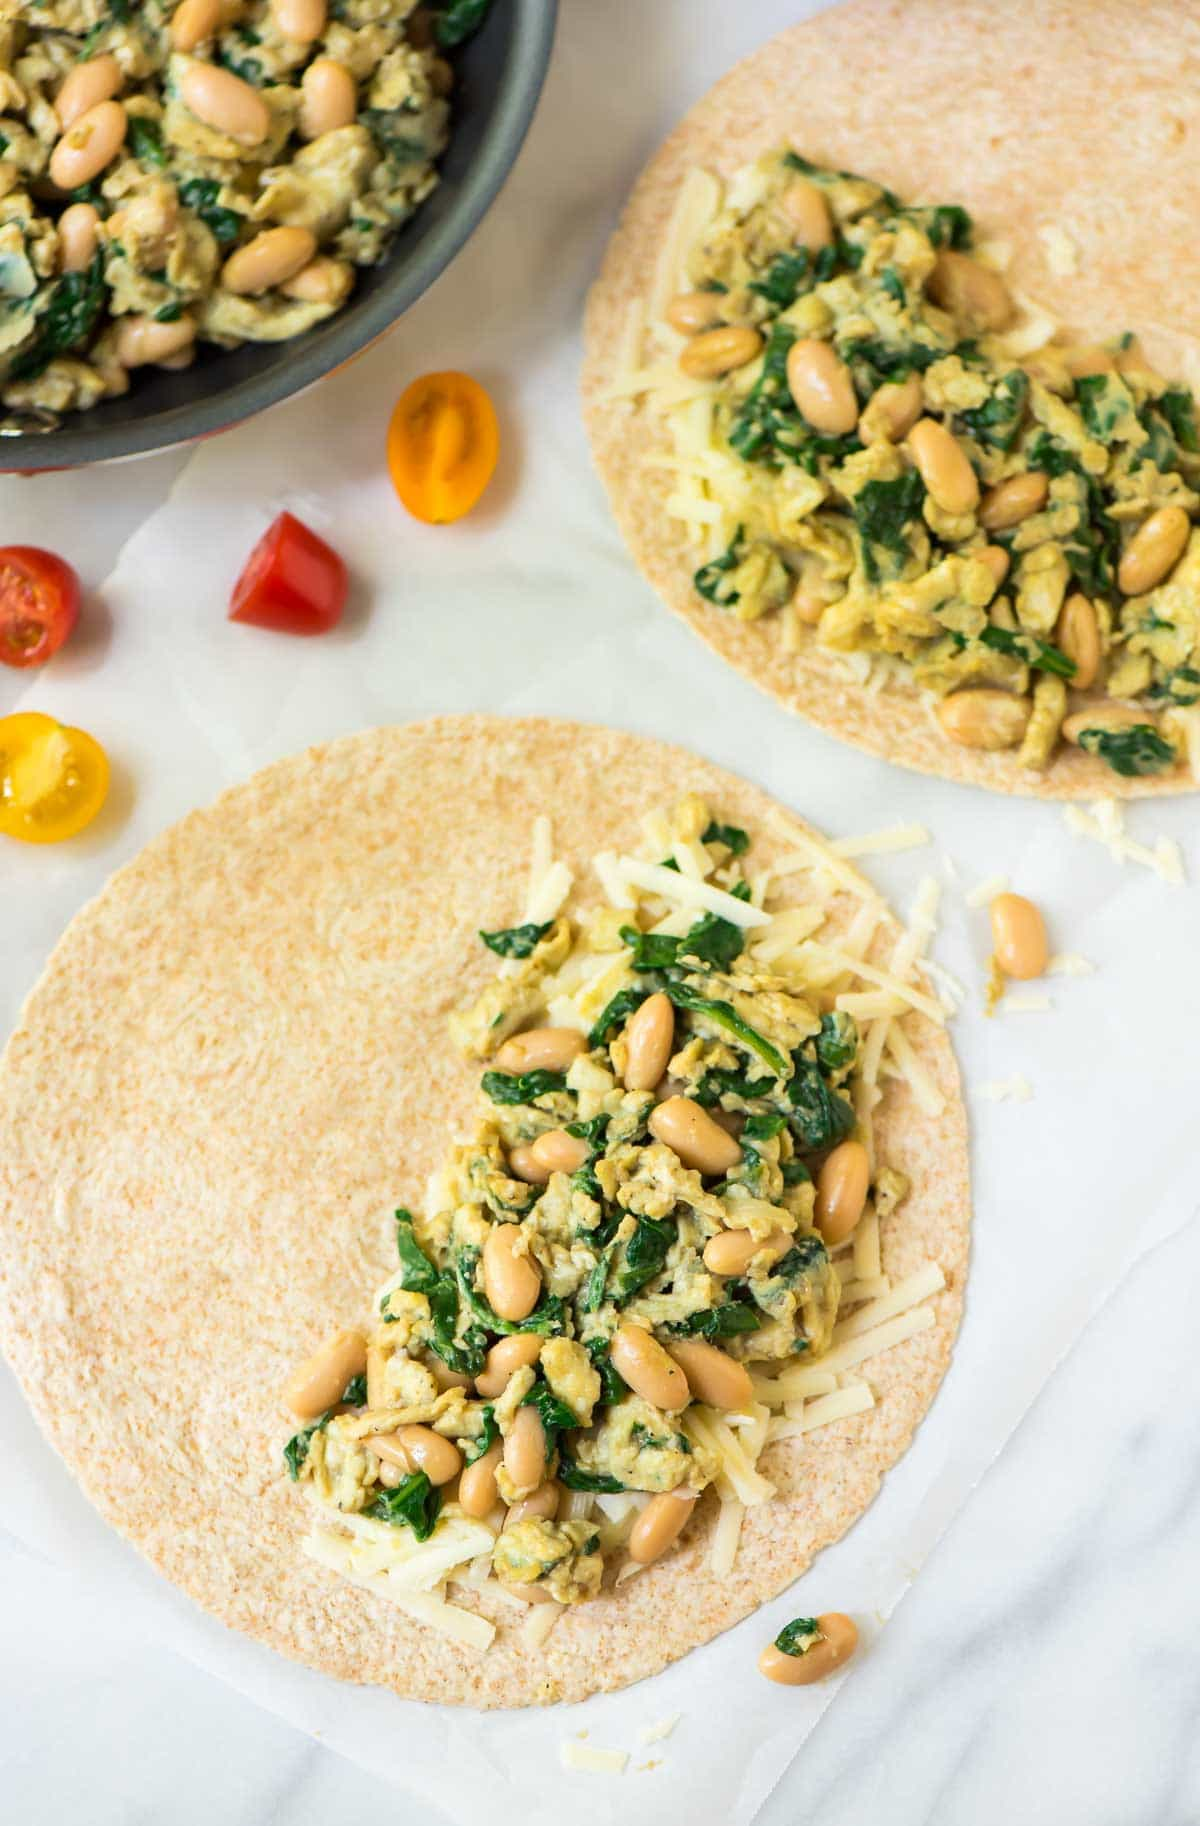 Wheat tortillas filled with eggs, white beans, spinach and cheese sitting on parchment paper